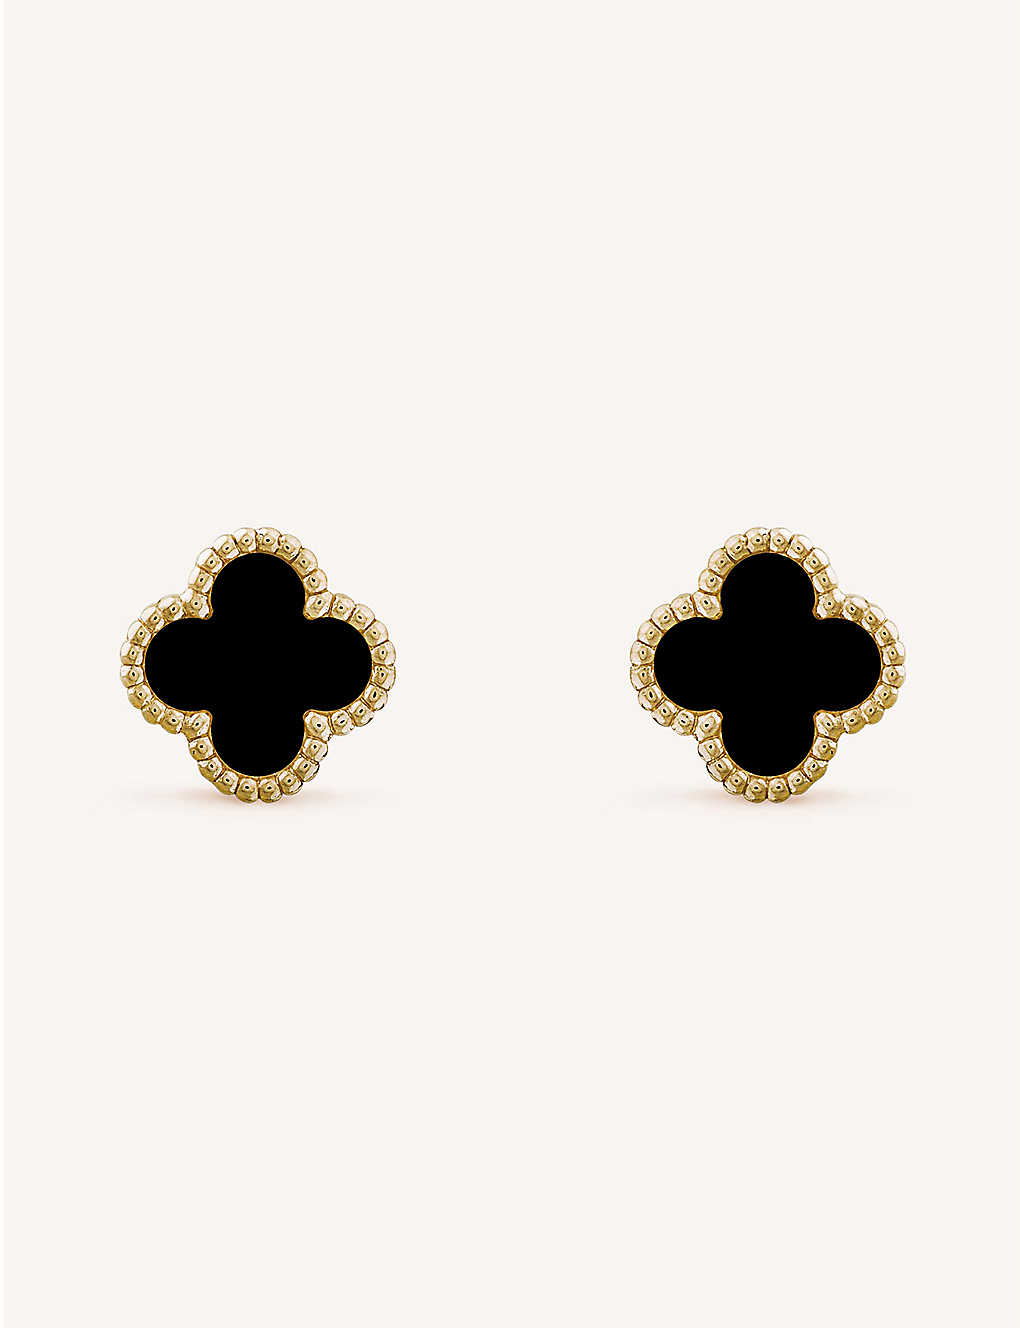 8e46eadc9 VAN CLEEF & ARPELS - Sweet Alhambra yellow-gold and onyx earrings ...